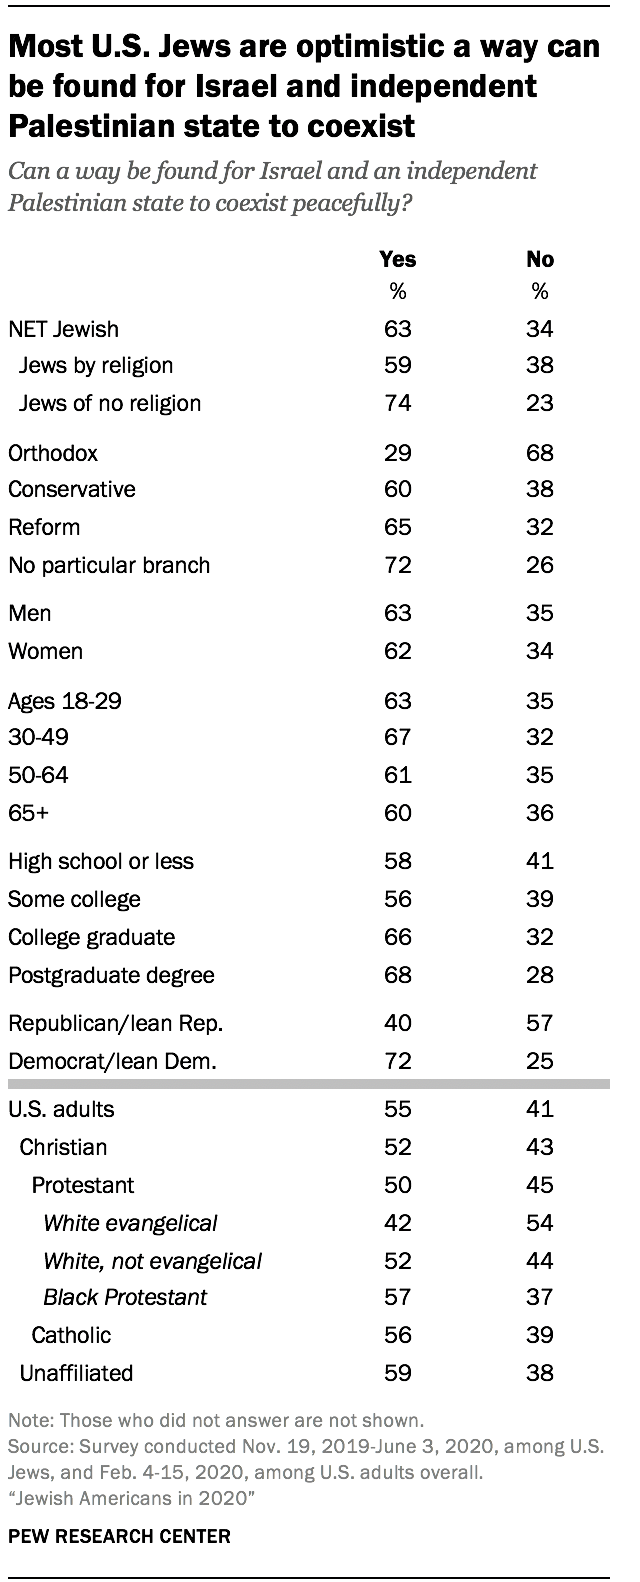 Most U.S. Jews are optimistic a way can be found for Israel and independent Palestinian state to coexist